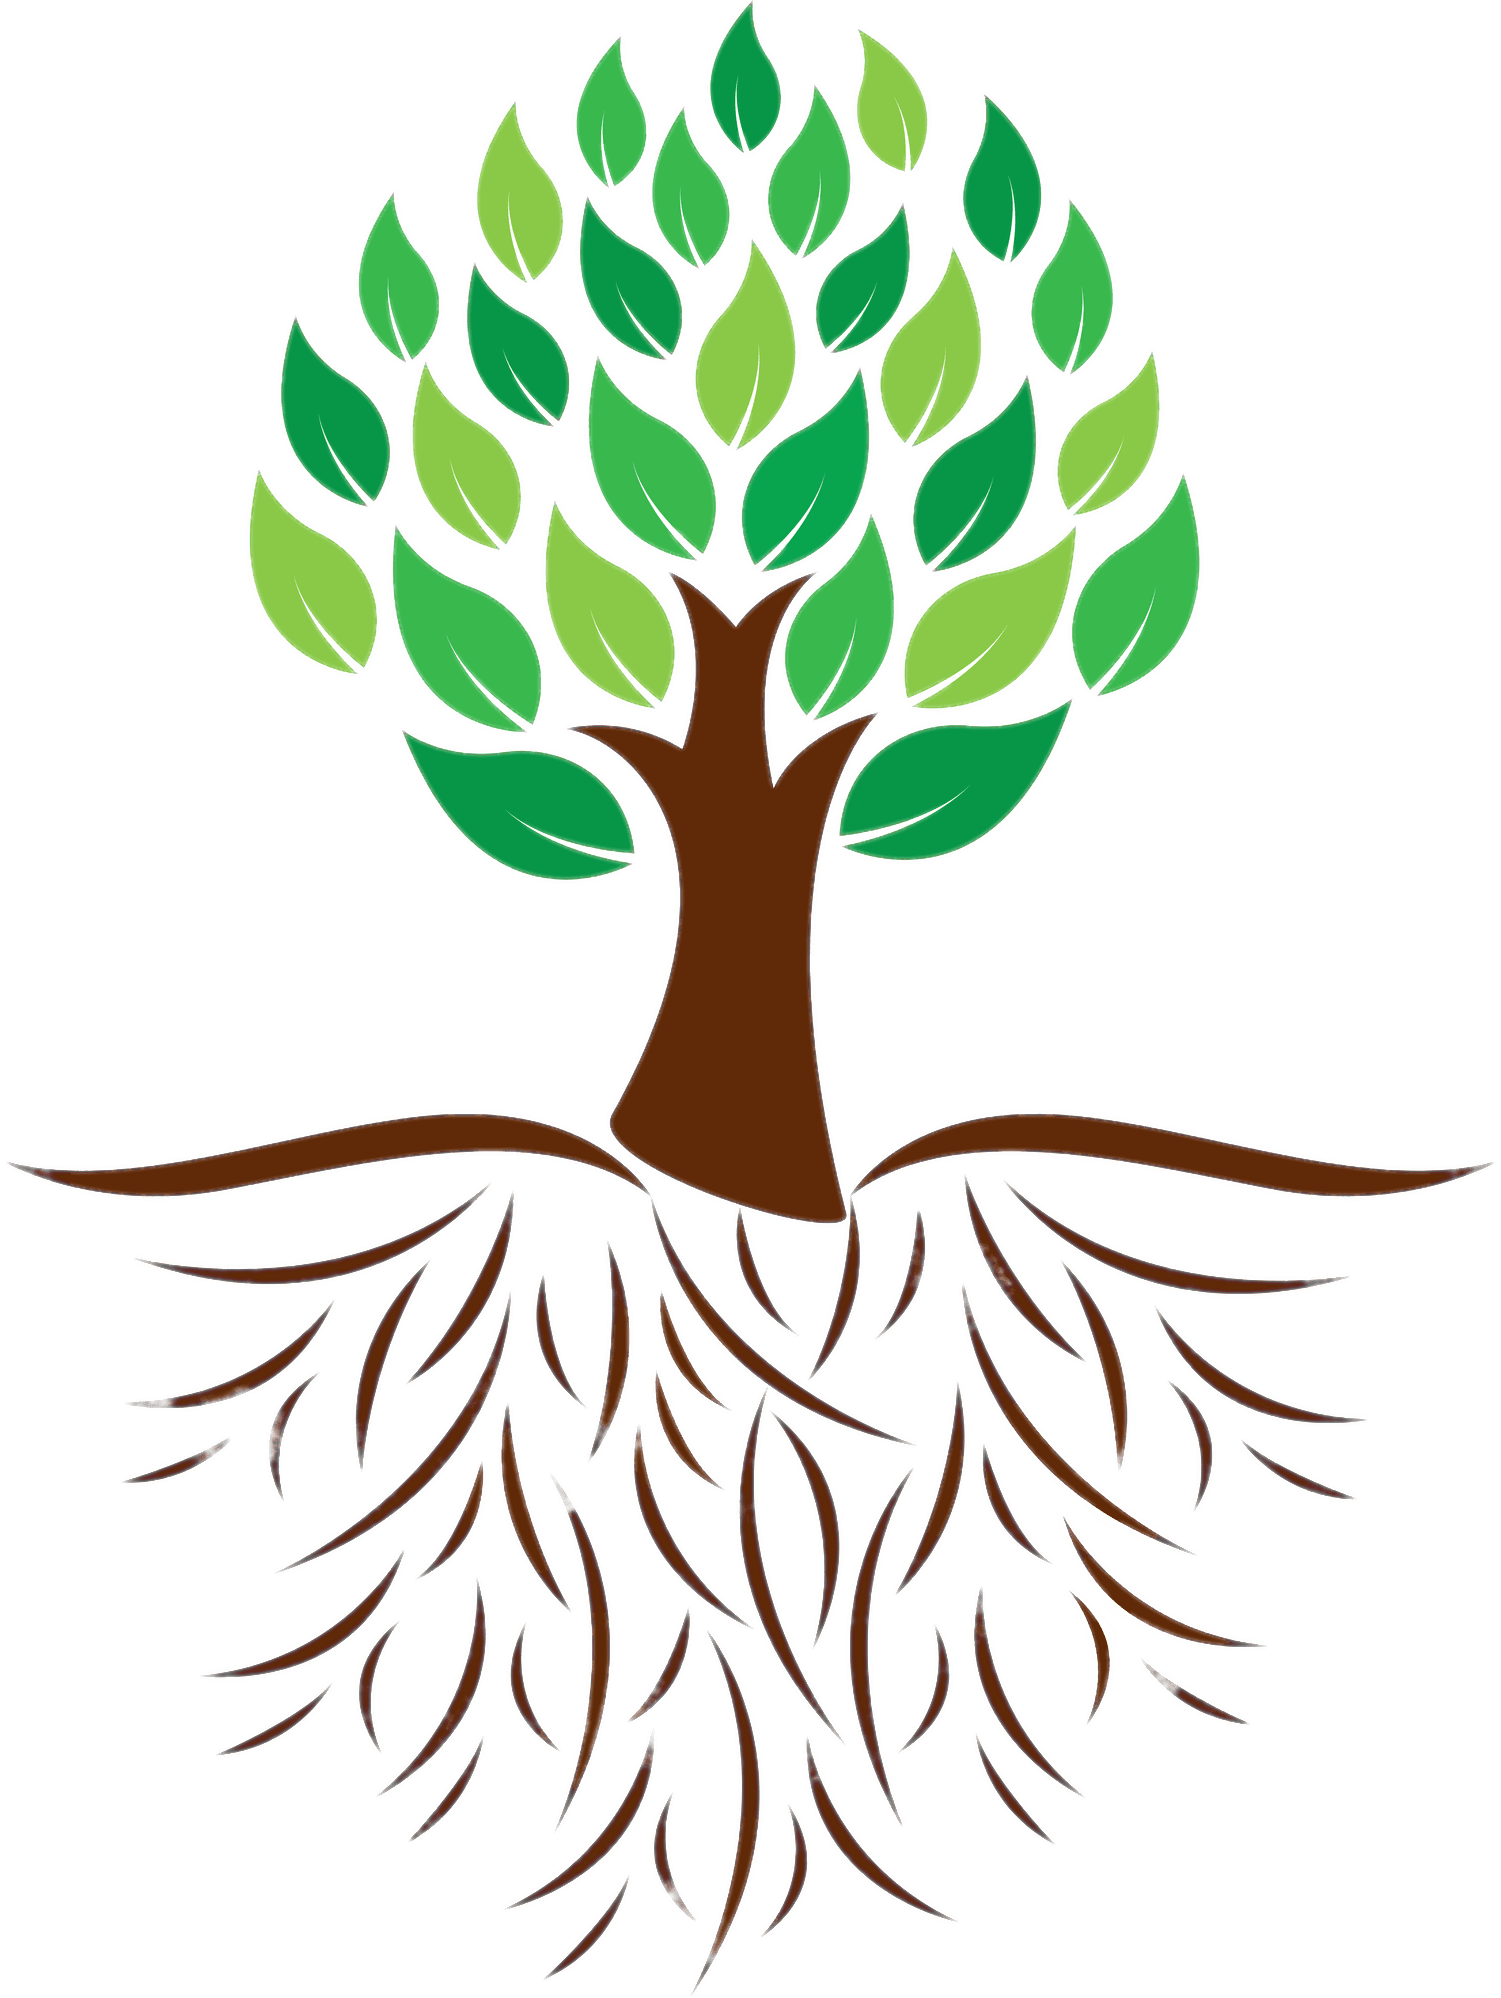 Tree and Roots Colour Illustration transparent PNG.